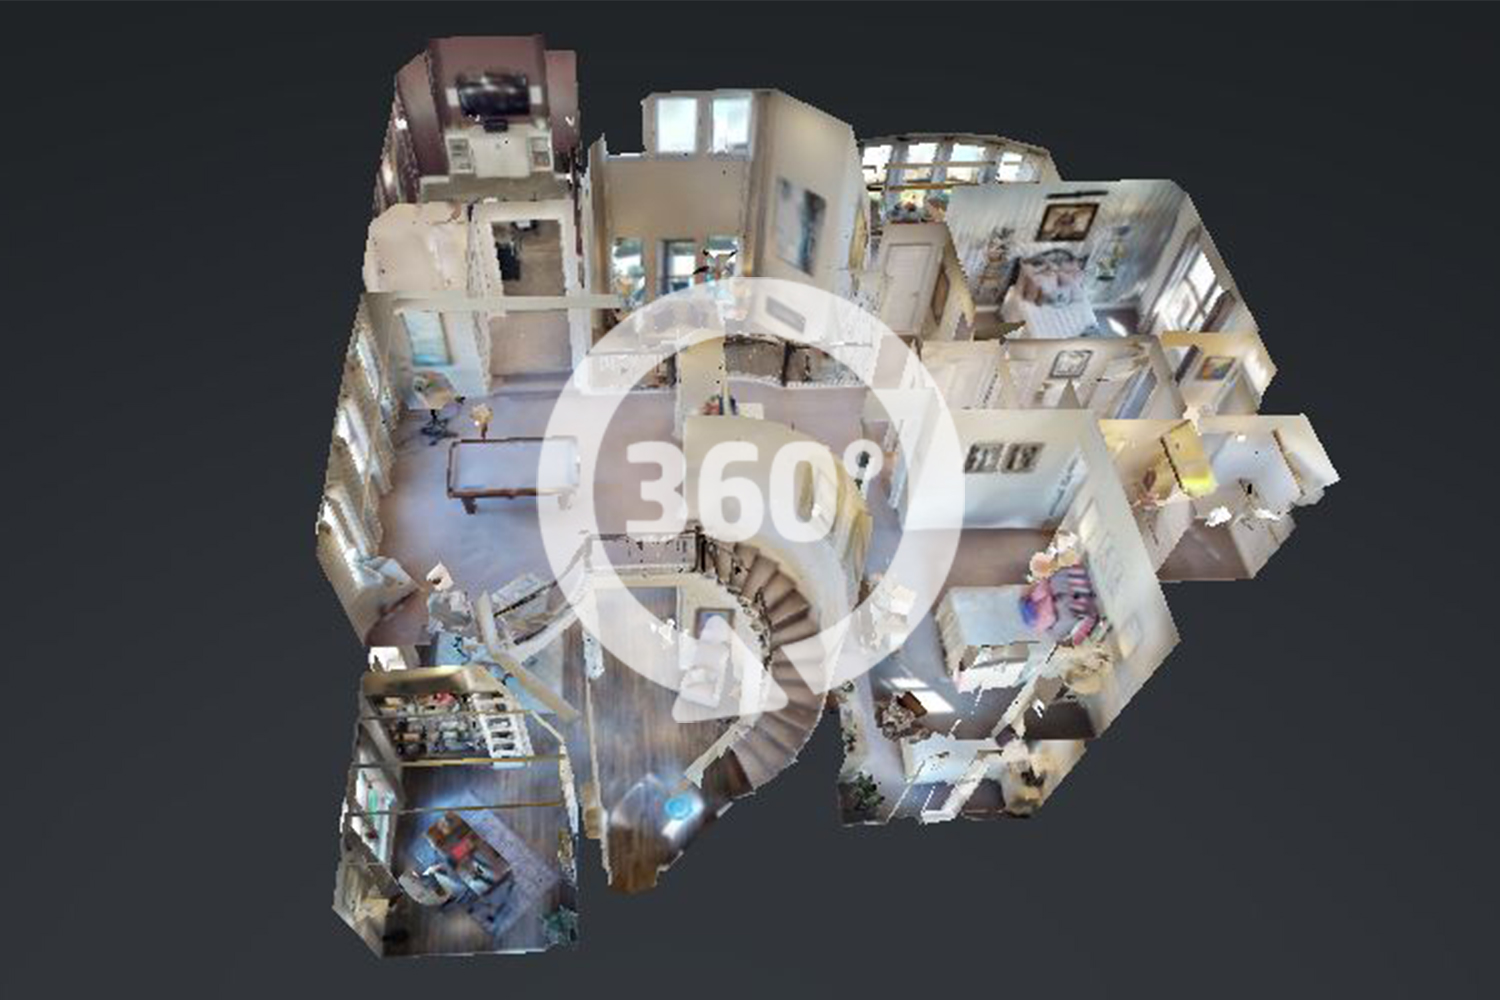 Click here to access the 360 tour of our model home.